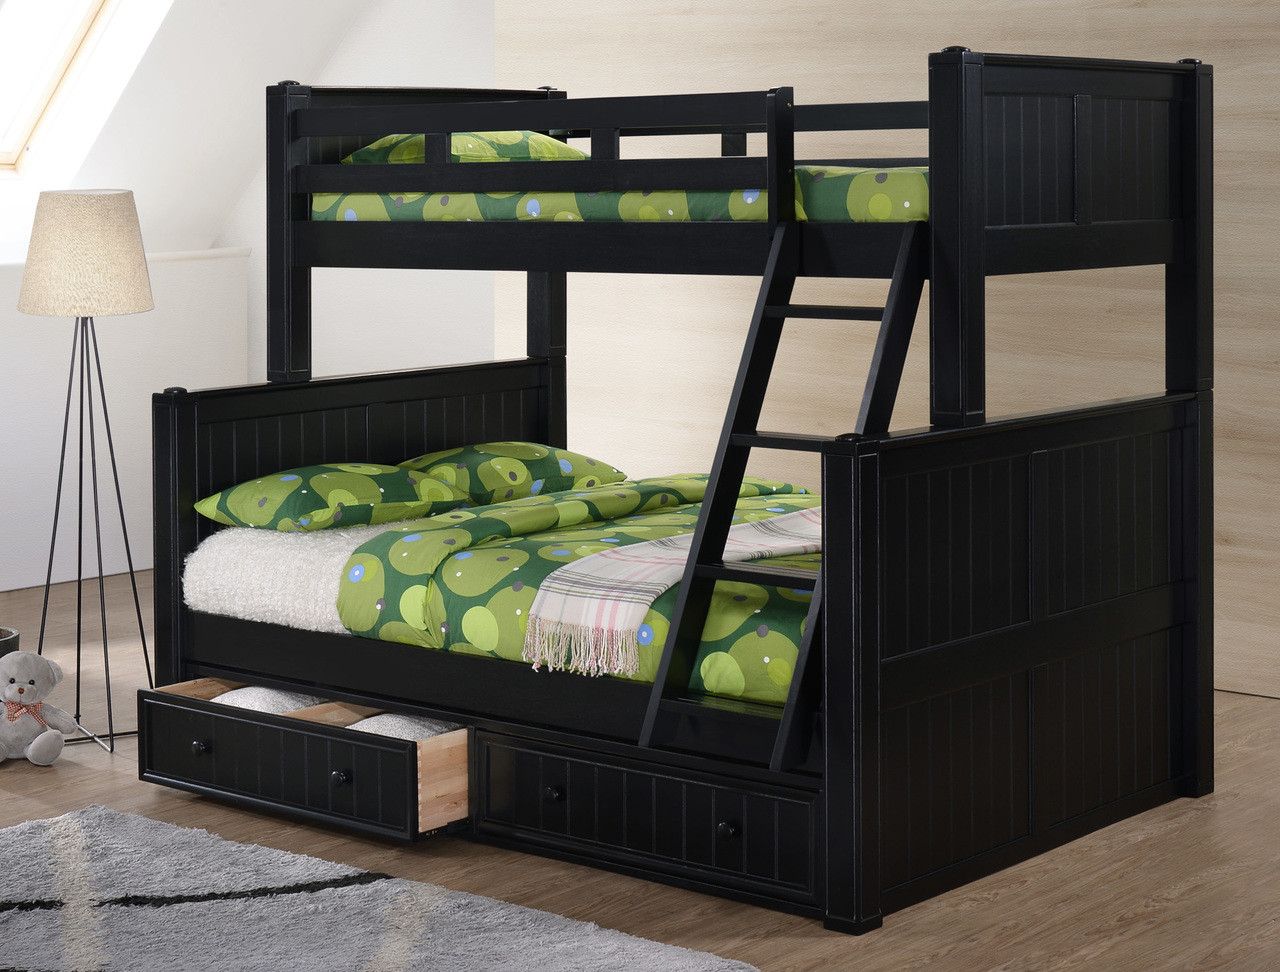 dillon black twin over full bunk bed. Black Bedroom Furniture Sets. Home Design Ideas